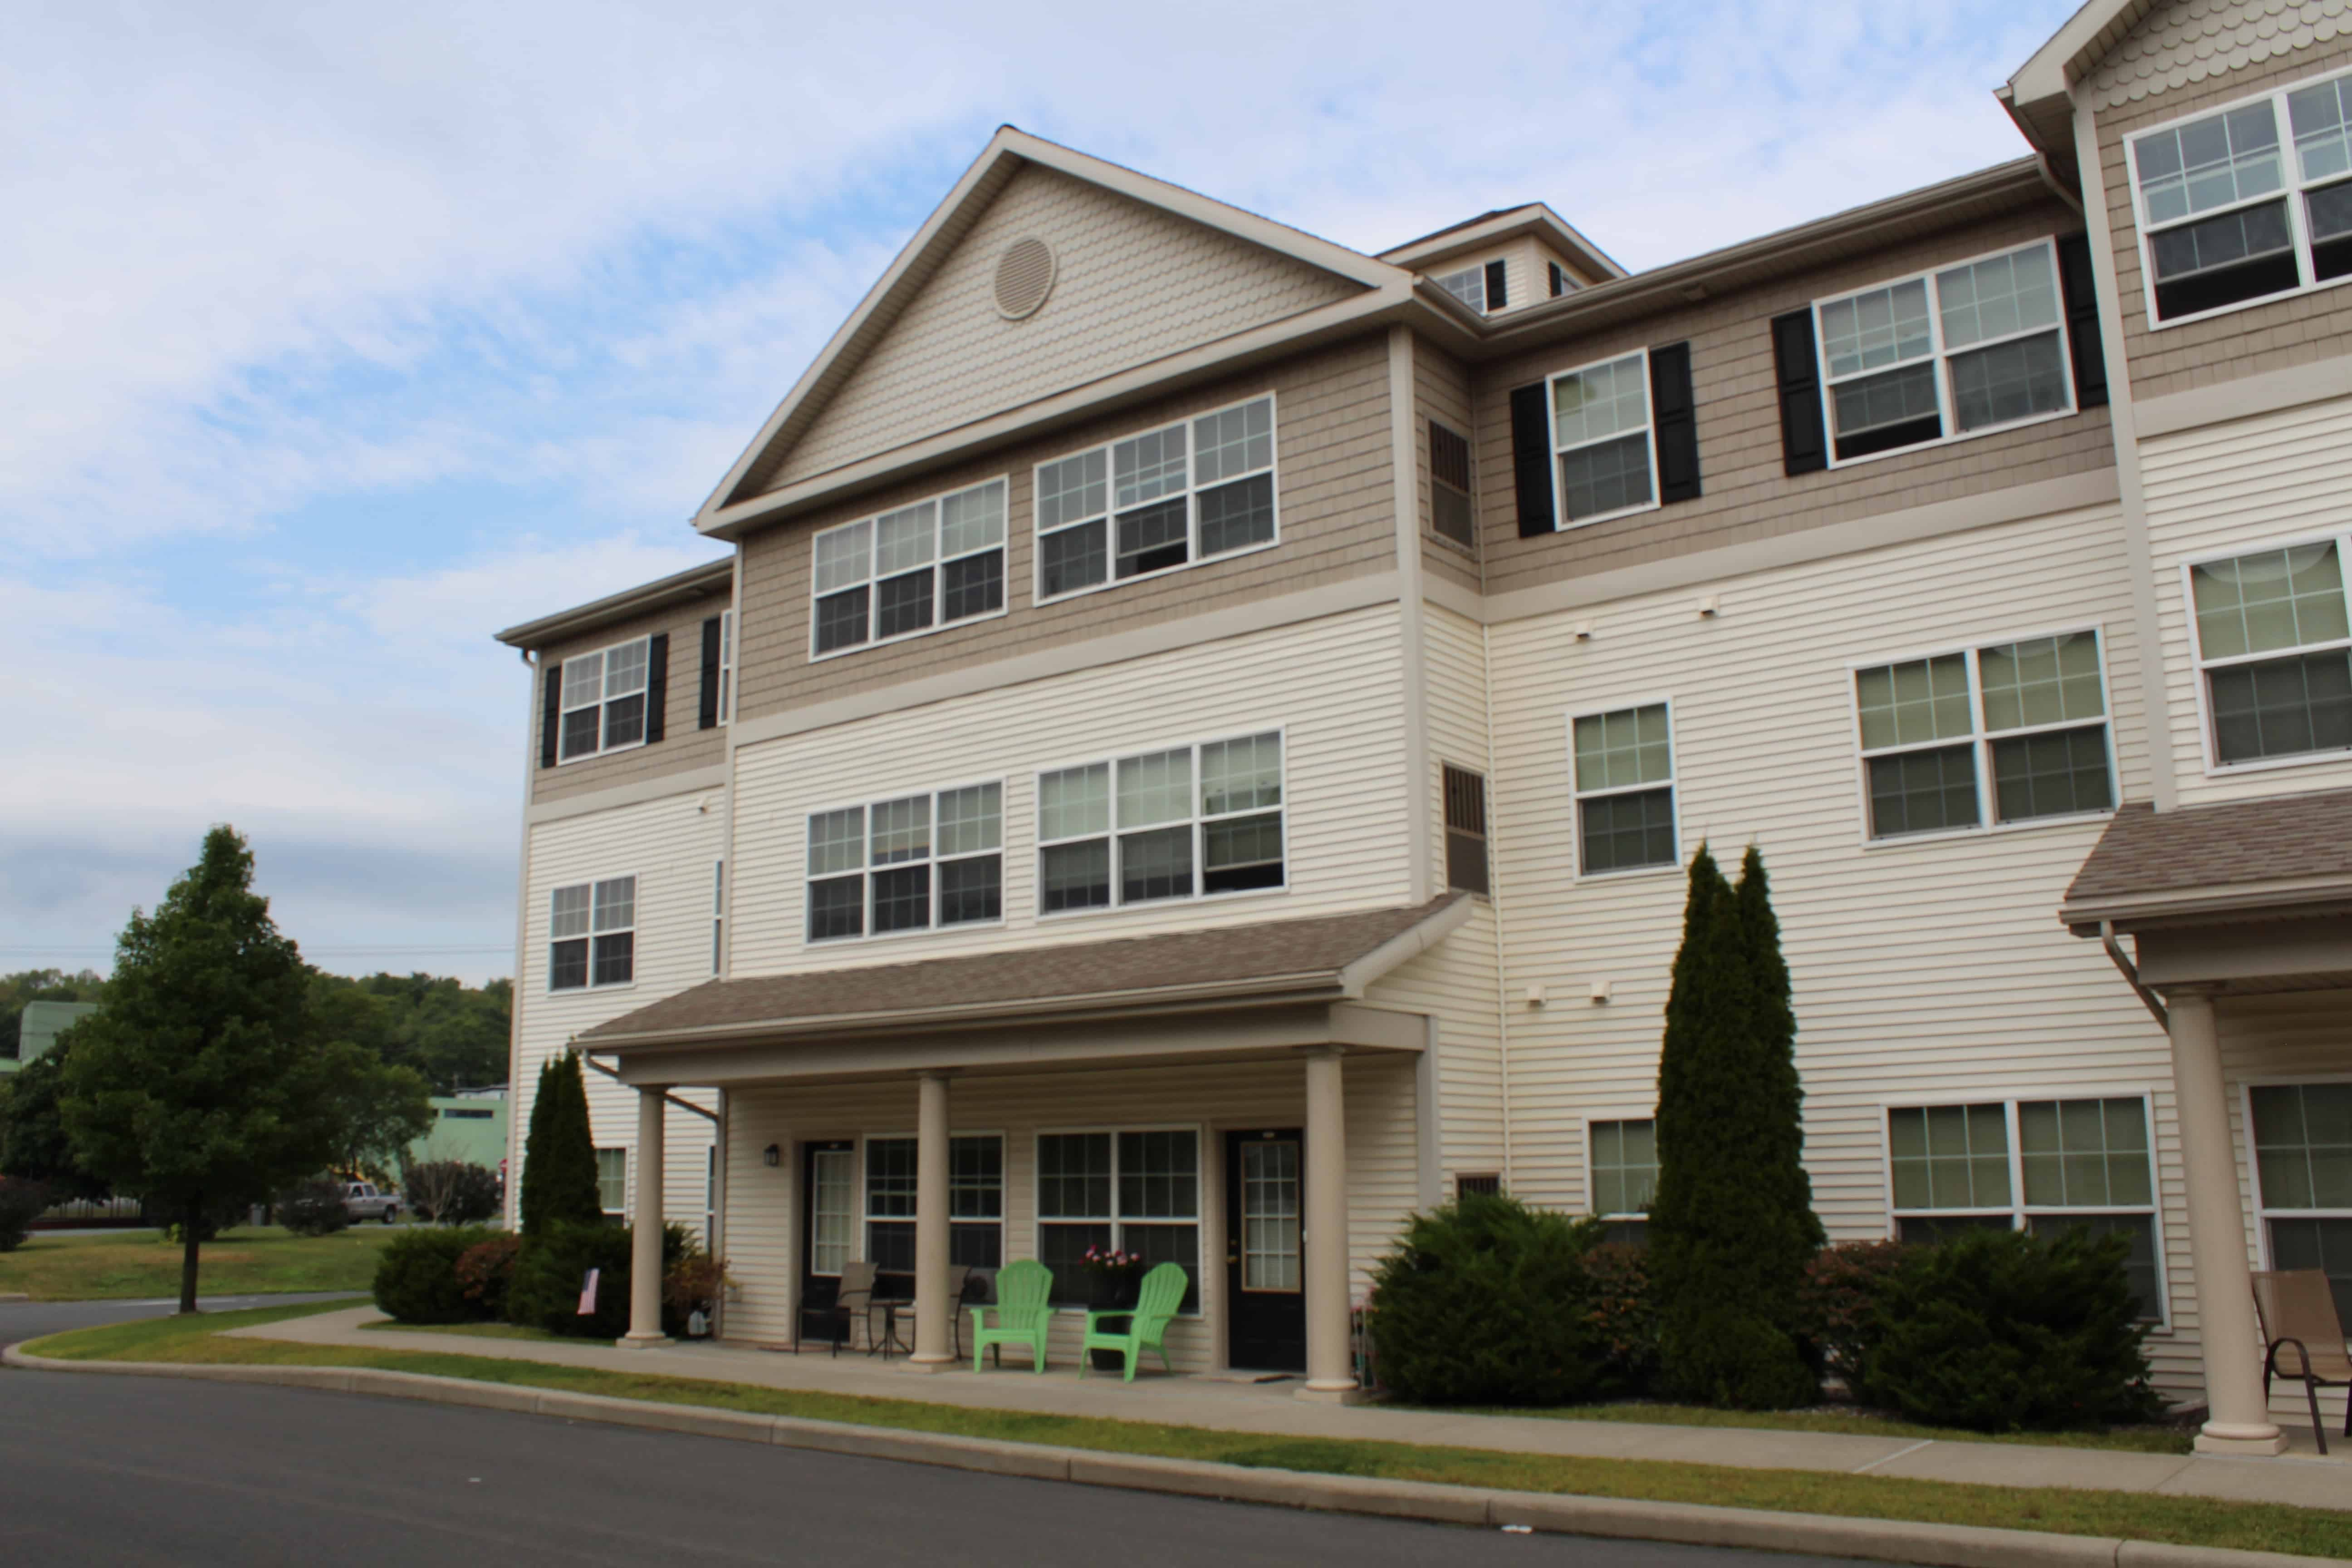 Front of Building, Waterside Apartments, Cohoes, New York